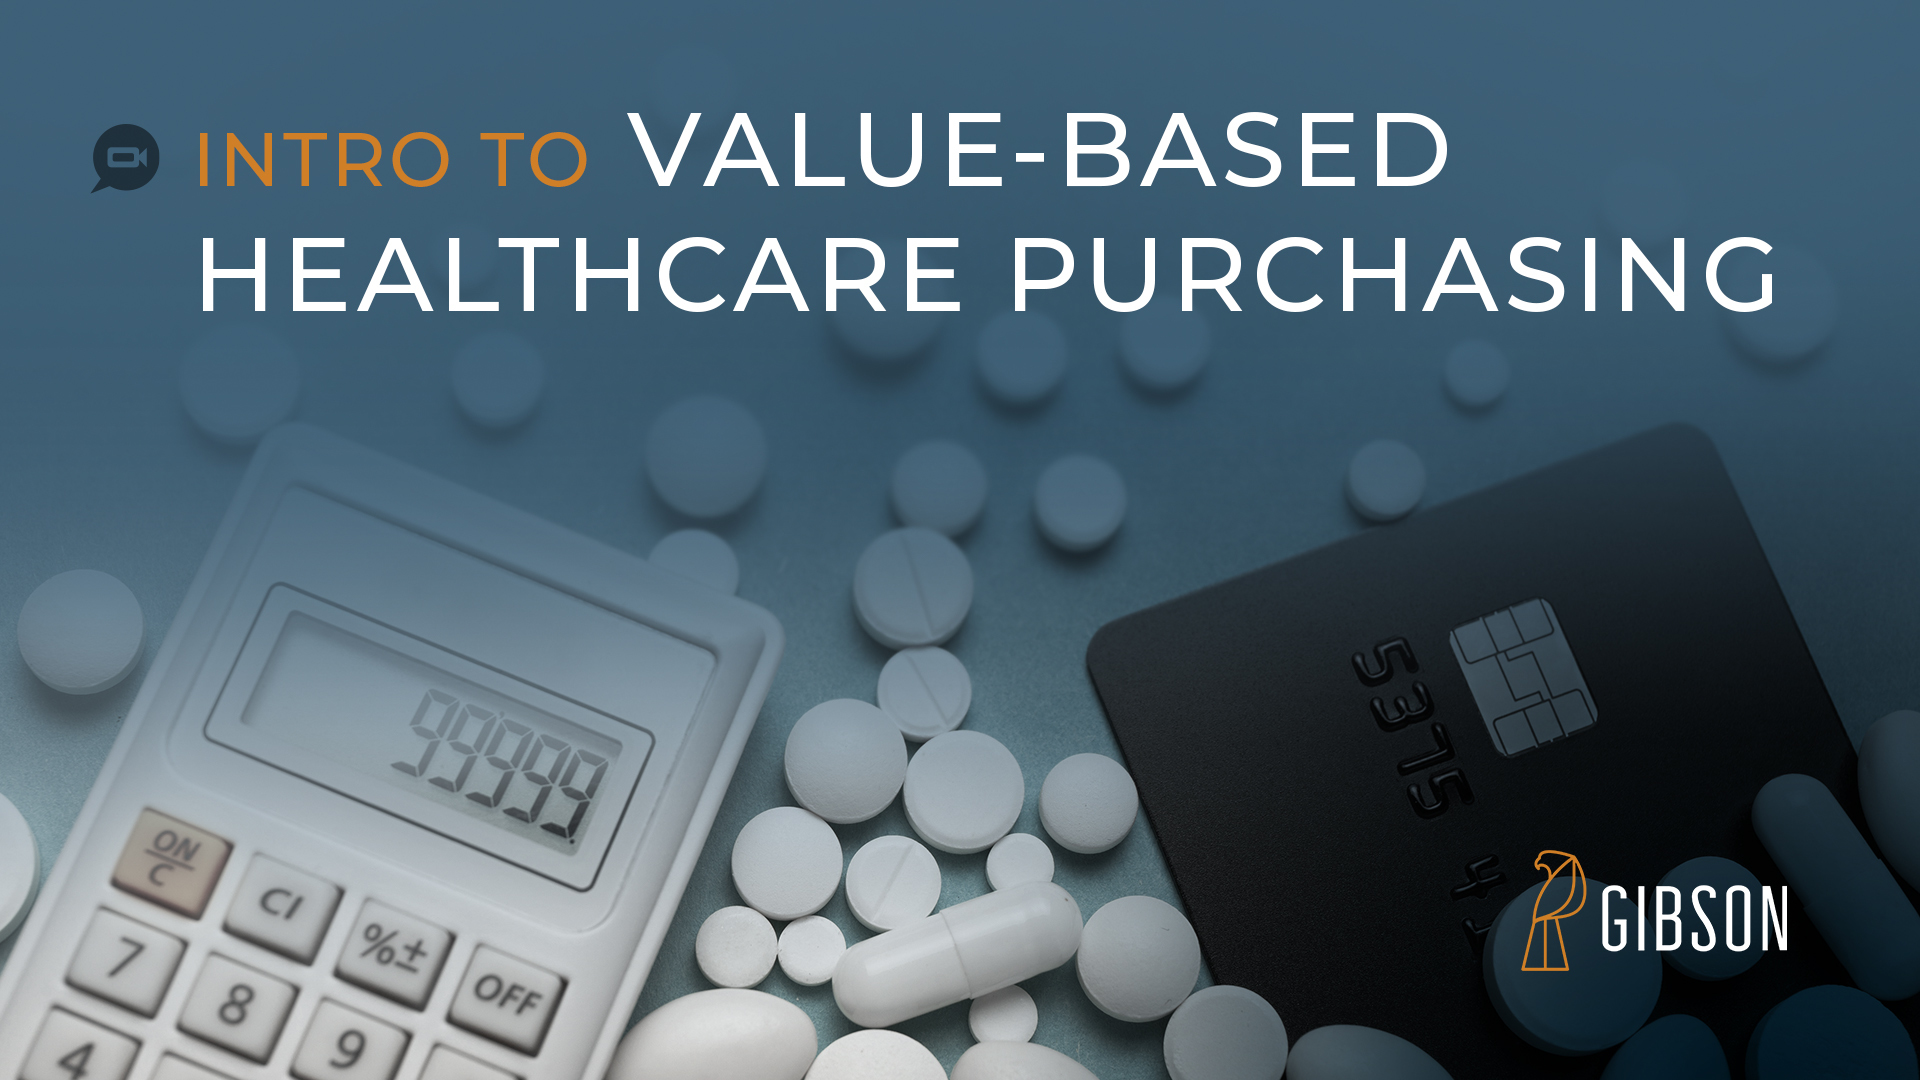 Intro to Value-Based Healthcare Purchasing